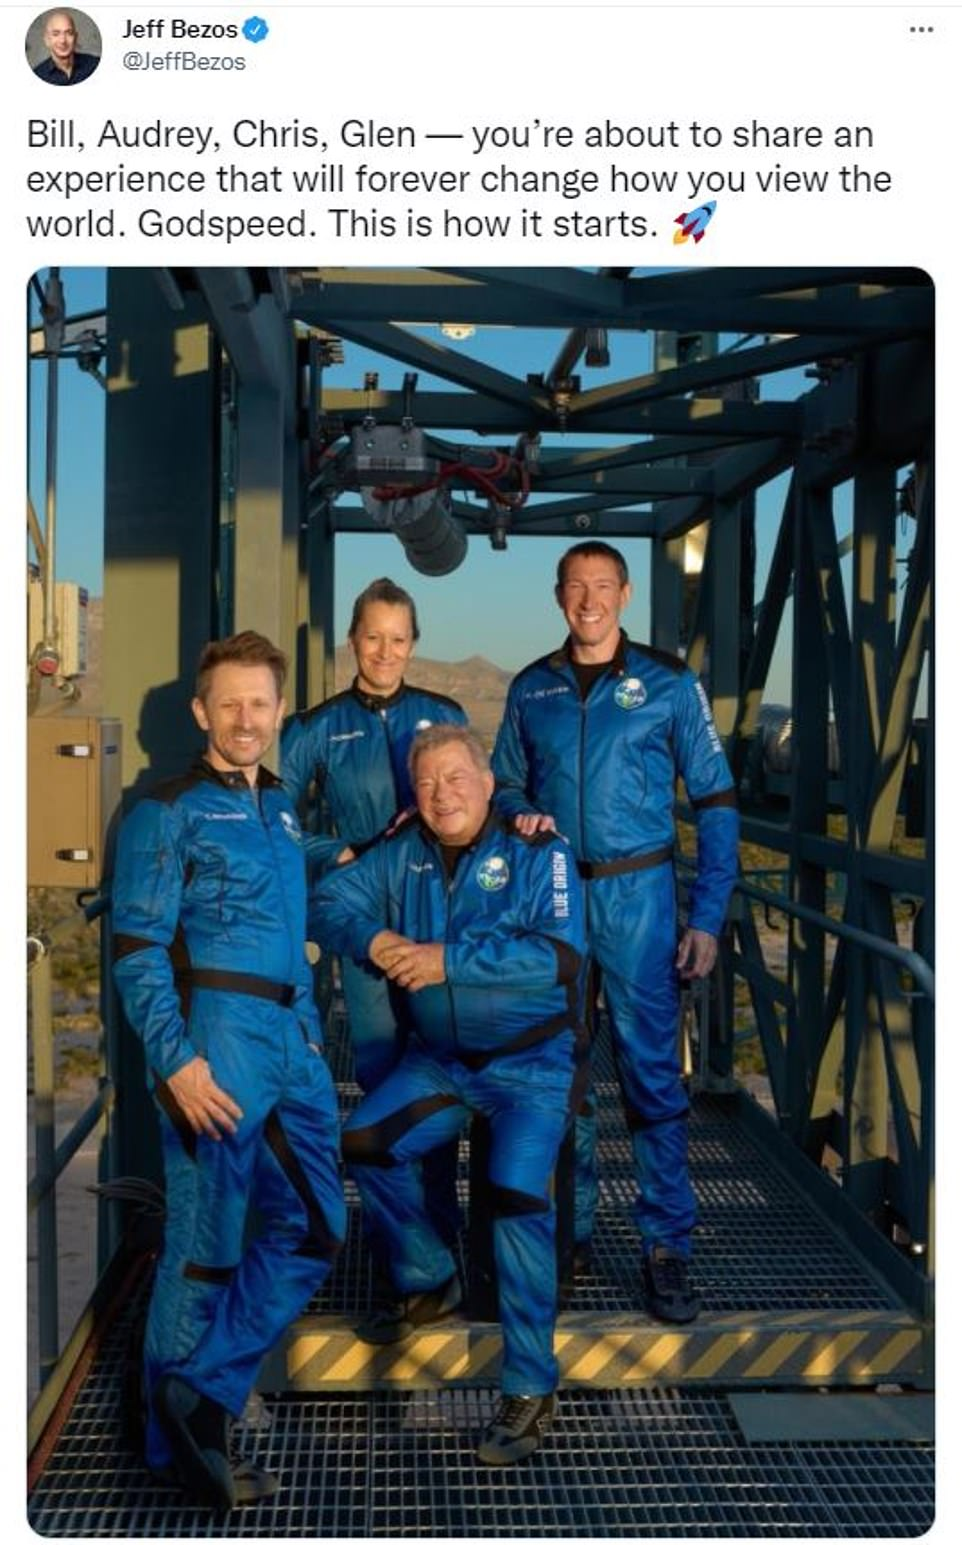 , Blue Origin shares video of an emotional William Shatner in space: 'No description can equal this', Nzuchi Times National News